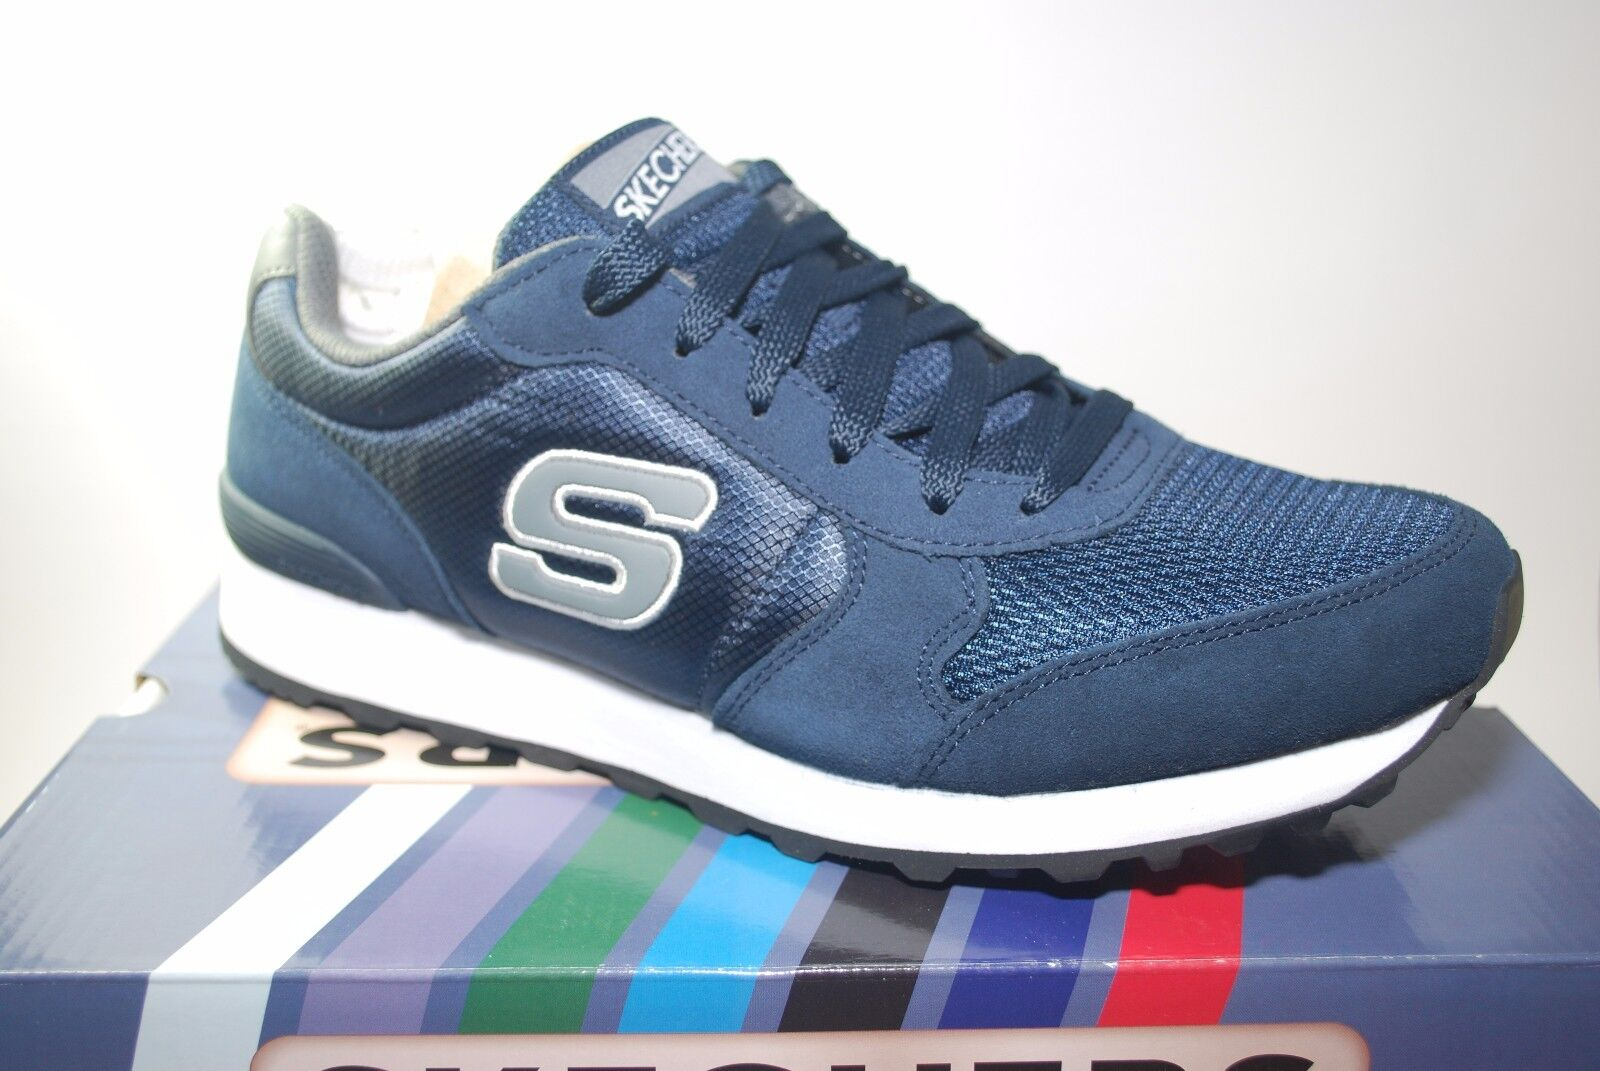 SKECHERS Mens OG 85 Early Grab - Navy/Grey Width Med FASHION Running Price reduction